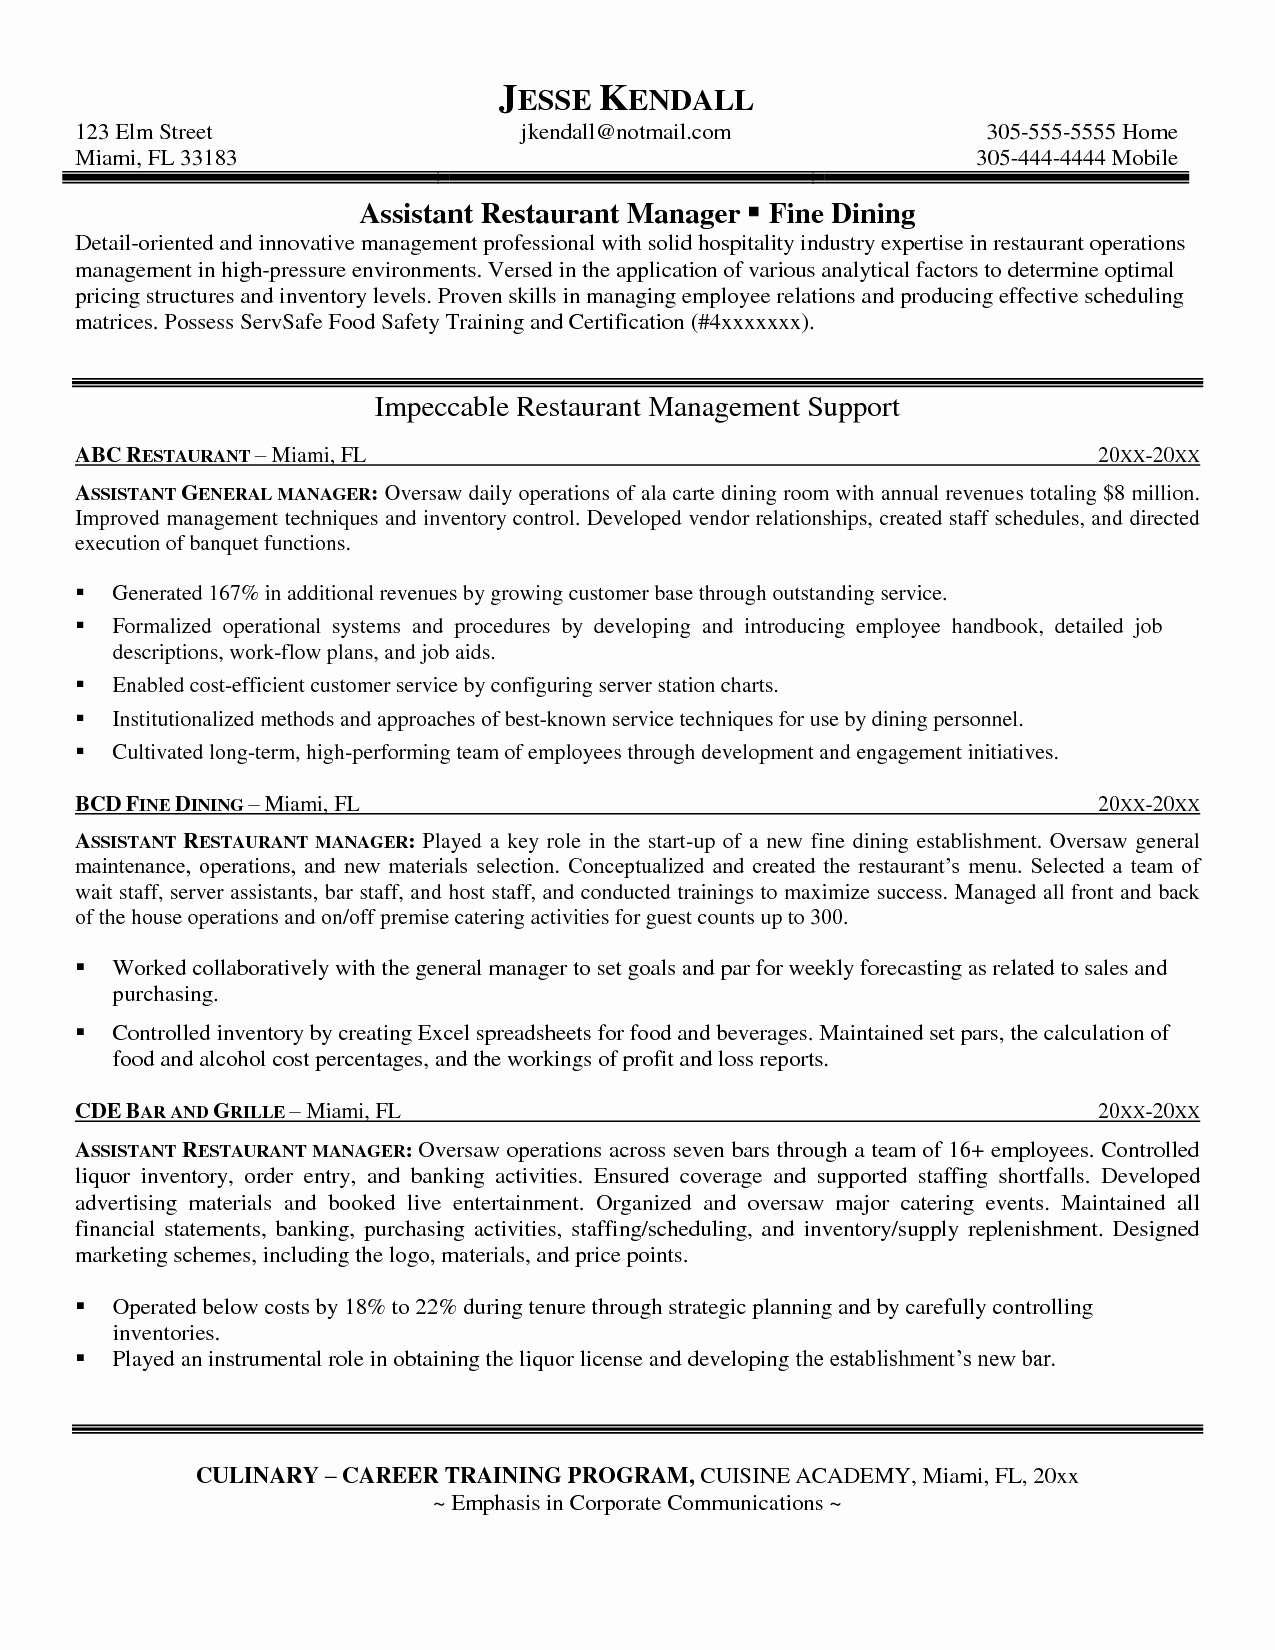 Restaurant Manager Resume Examples Beautiful Talenttube Blog